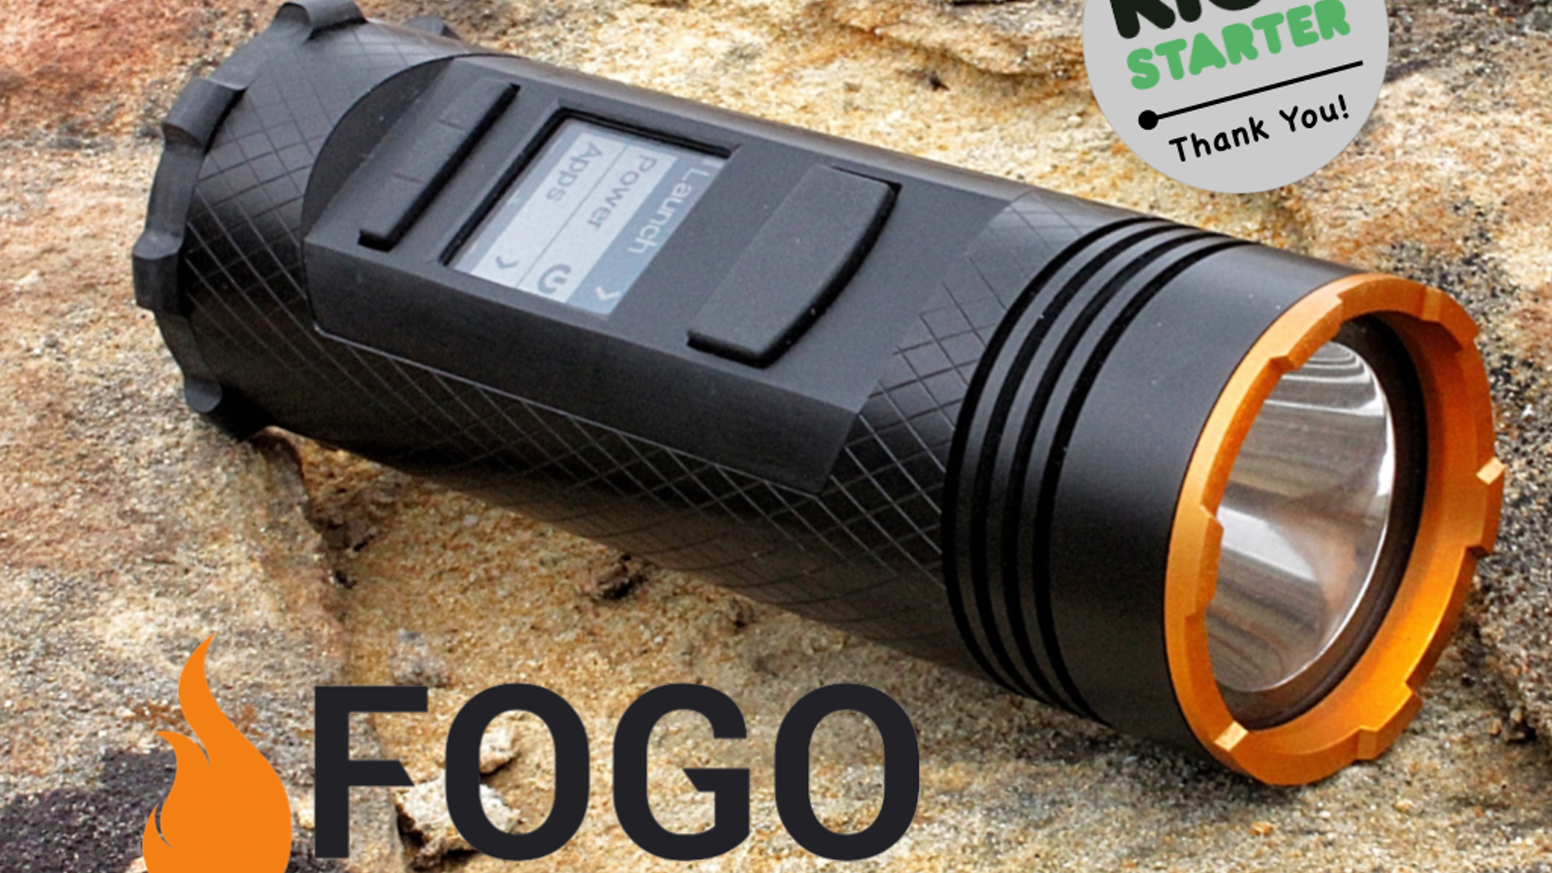 With a rugged walkie-talkie, flashlight, GPS, bluetooth, and USB backup battery, the Fogo is the Ultimate Adventure Gadget!